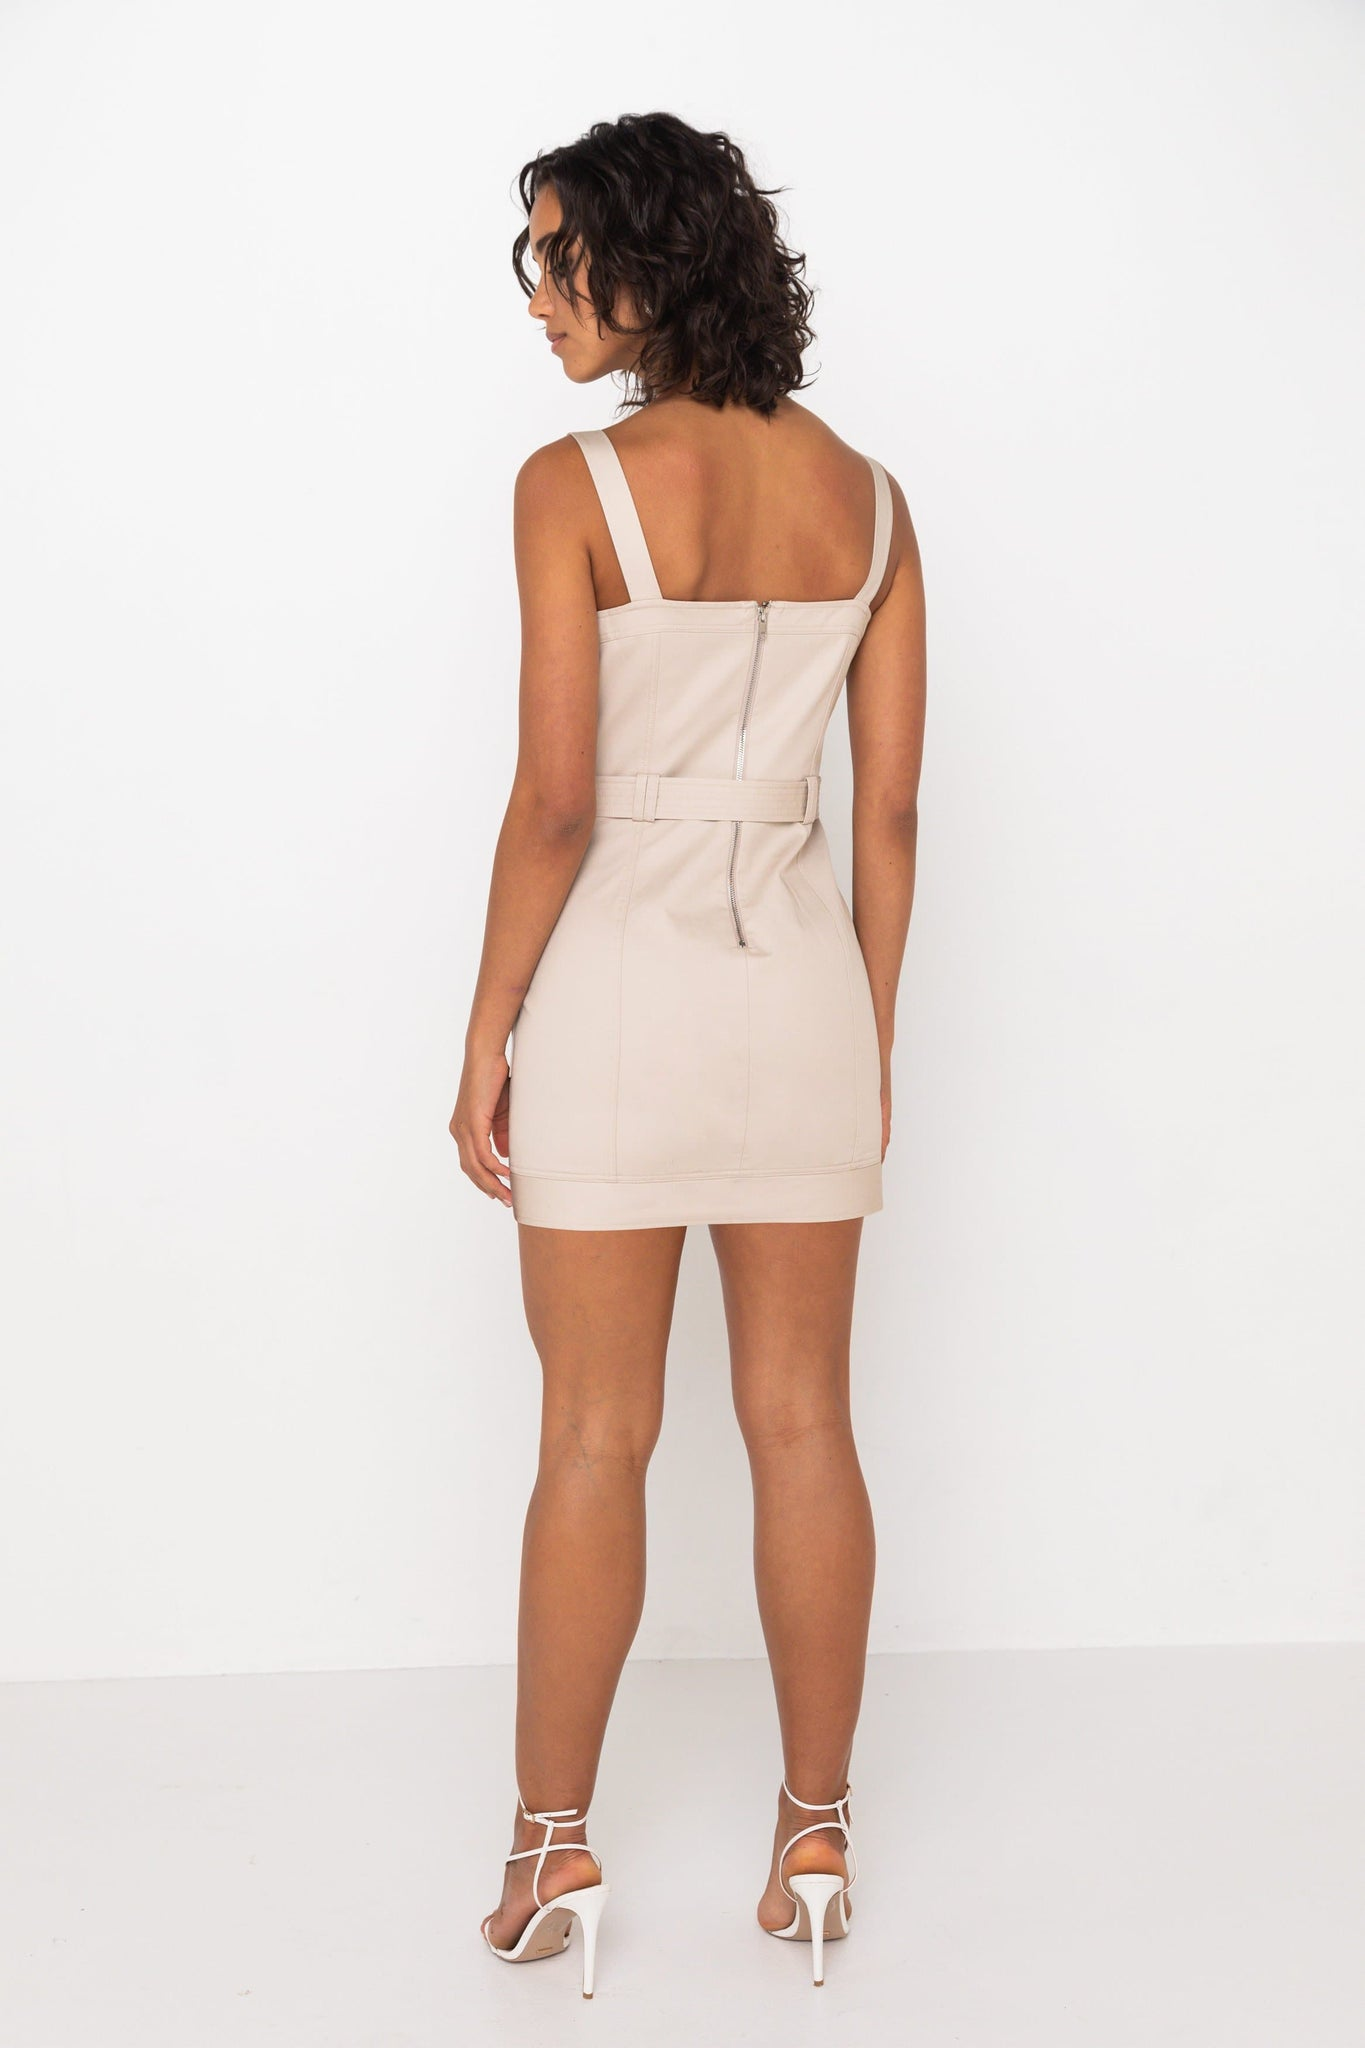 The Sandstone Mini Dress